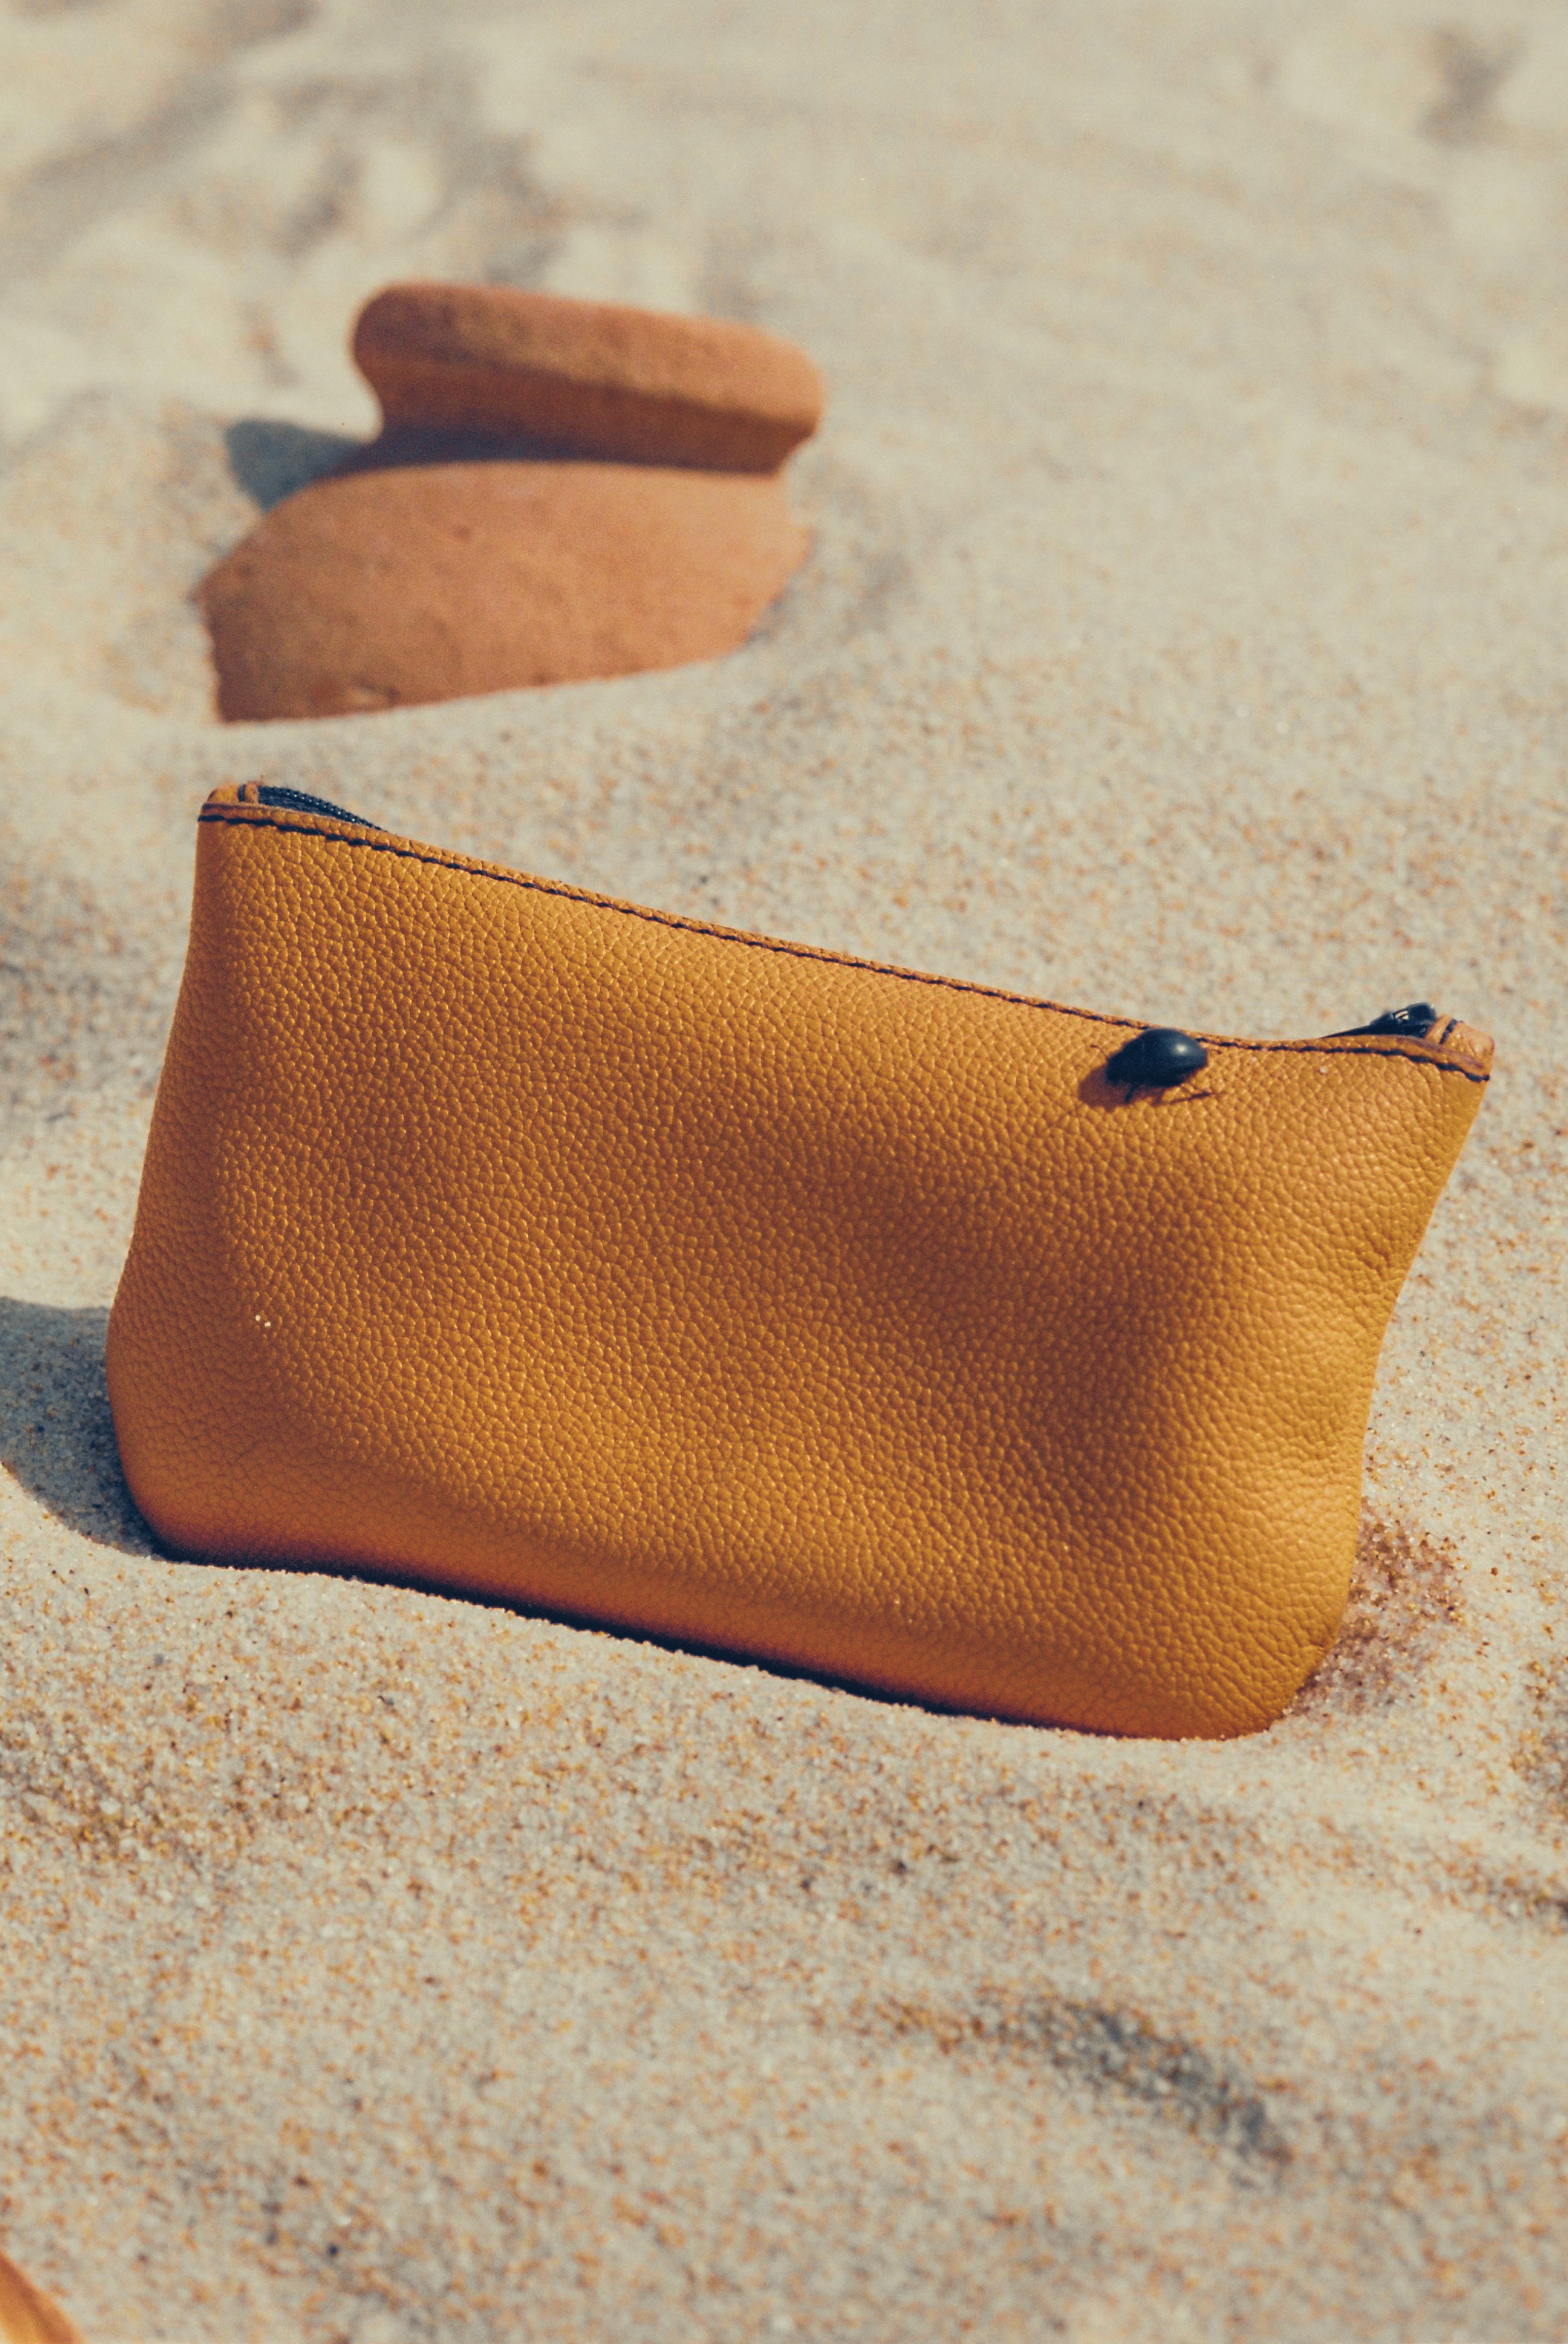 Megan-Courtis-The-Vertical-Collection-pasmanleather